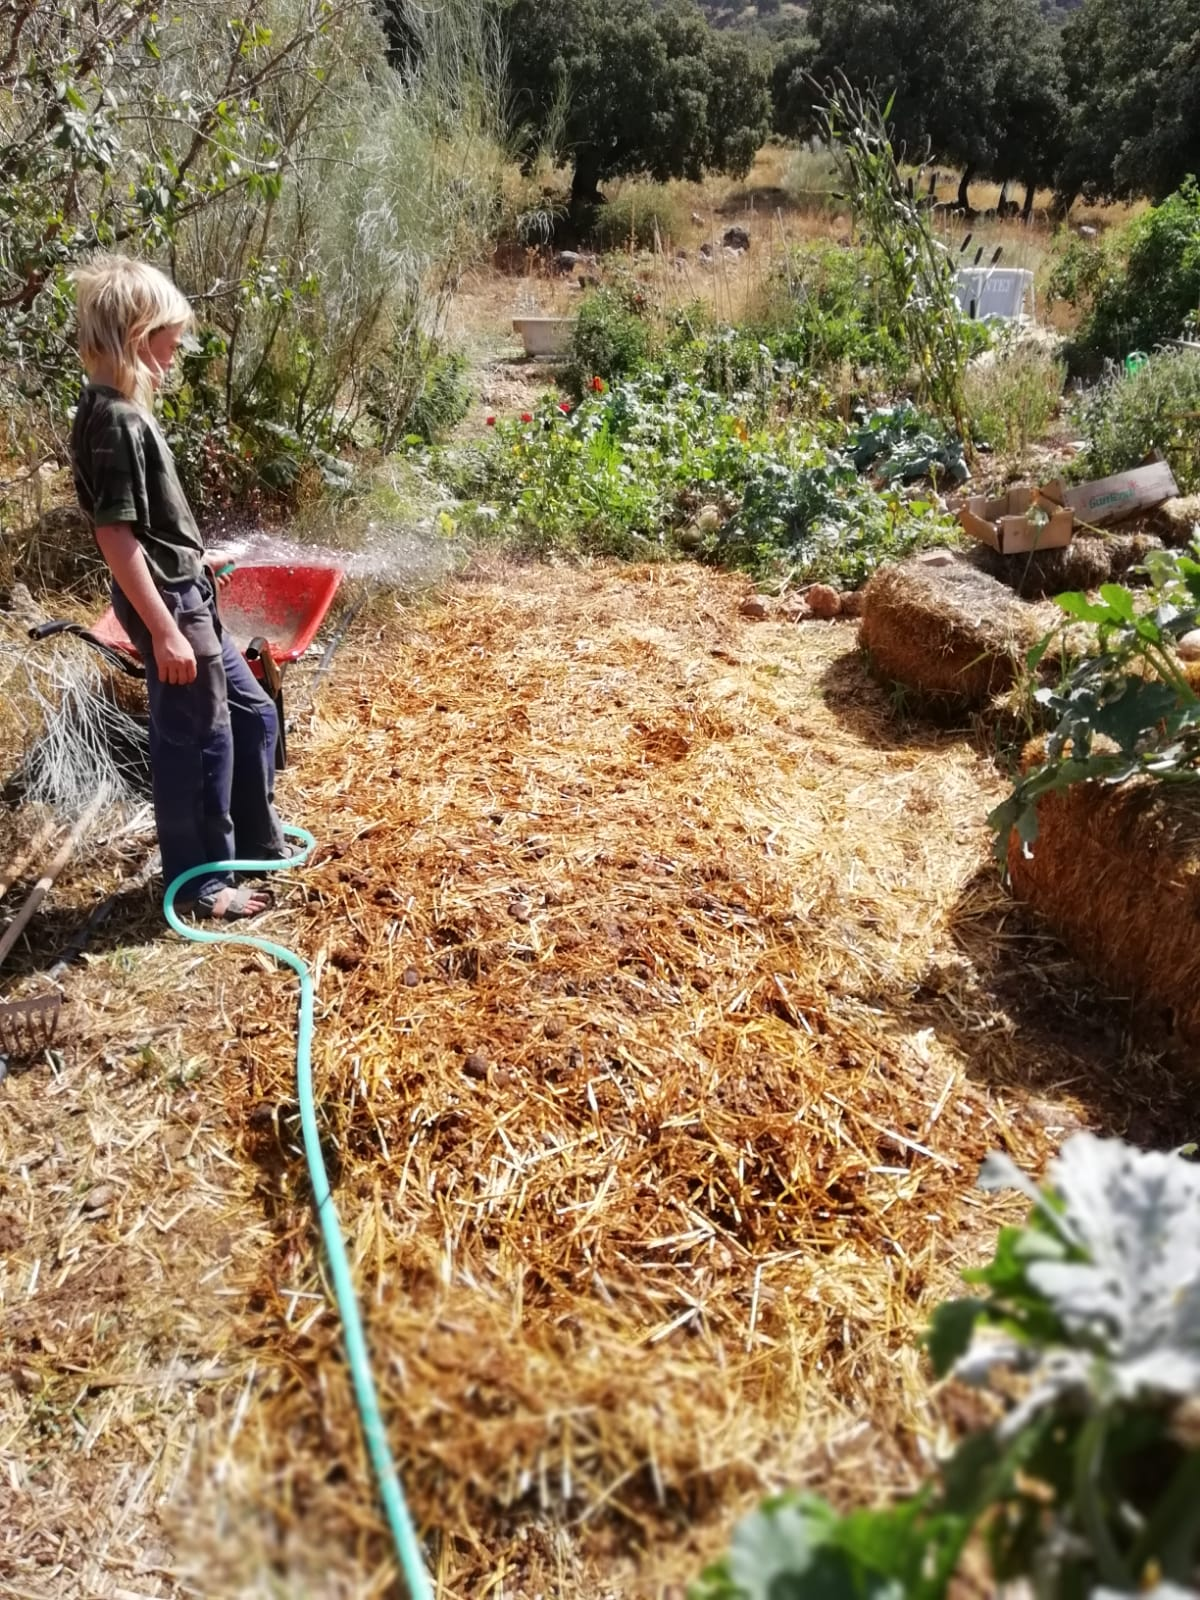 Step 3: A final cap of mulch protects the topsoil, and all is watered thoroughly to ignite the decomposition process